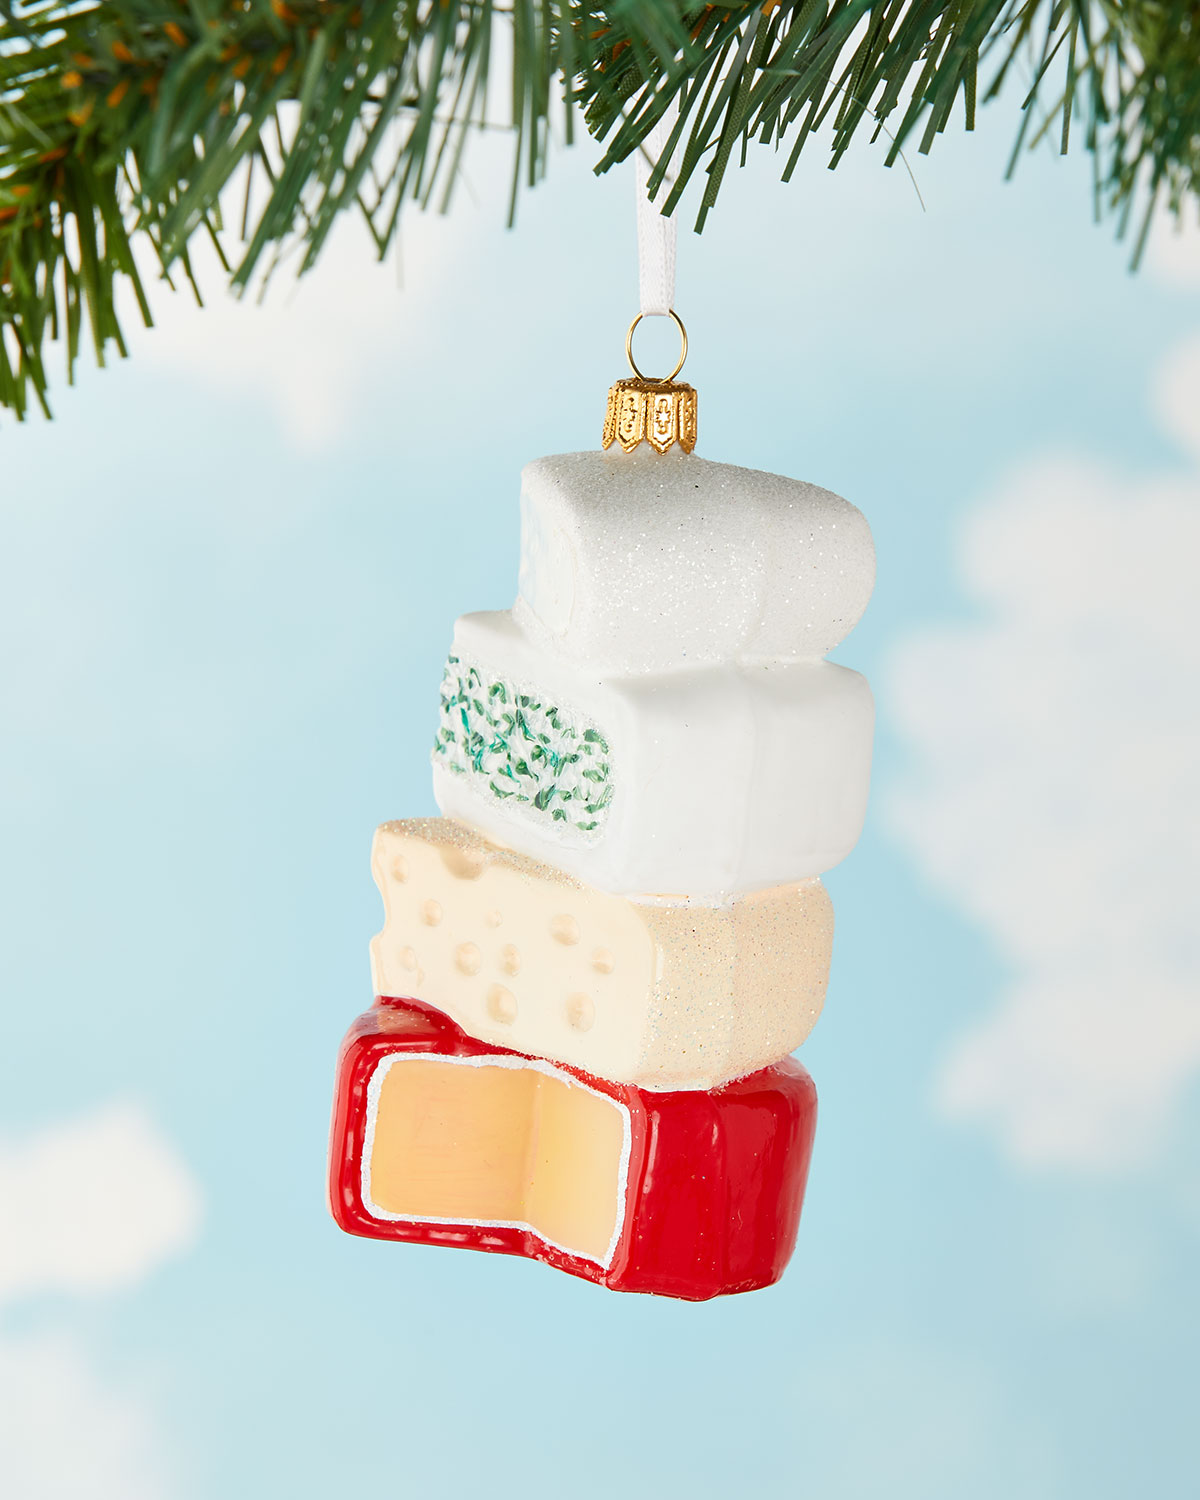 cheese stack christmas ornament